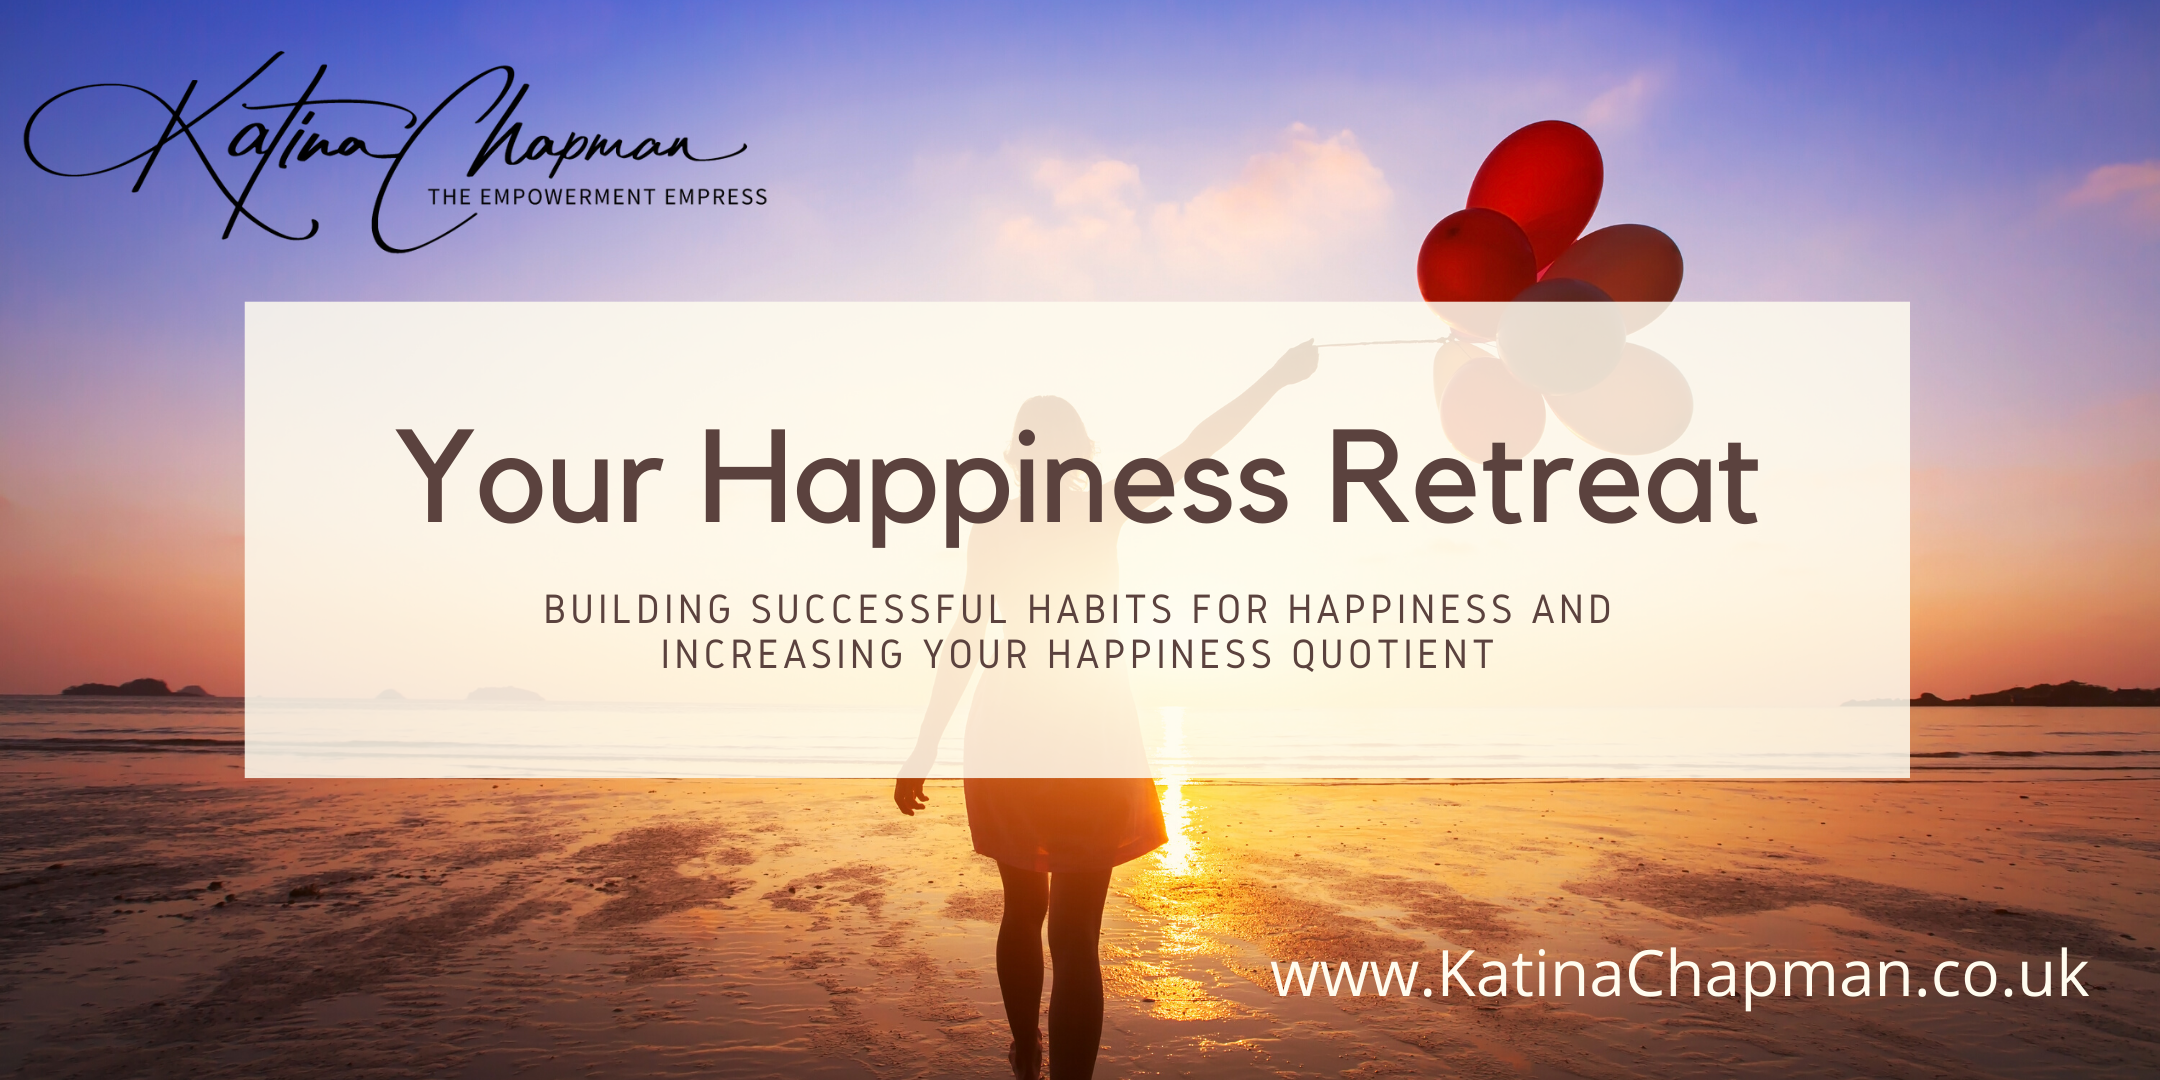 New Programme for building habits for happiness